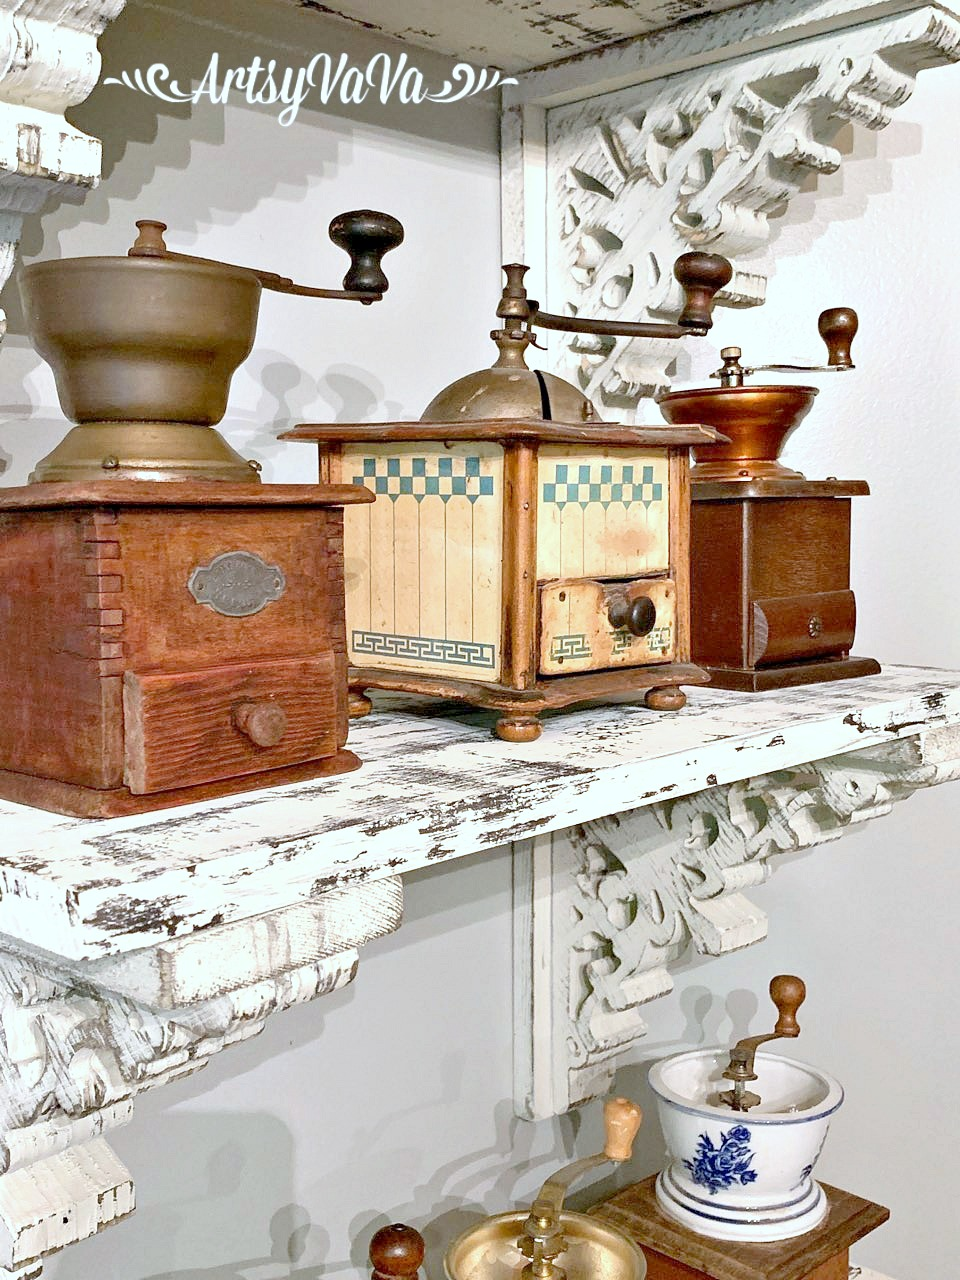 Coffee grinder collection on shelves by Artsy VaVa, featured on DIY Salvaged Junk Projects 528 on Funky Junk!